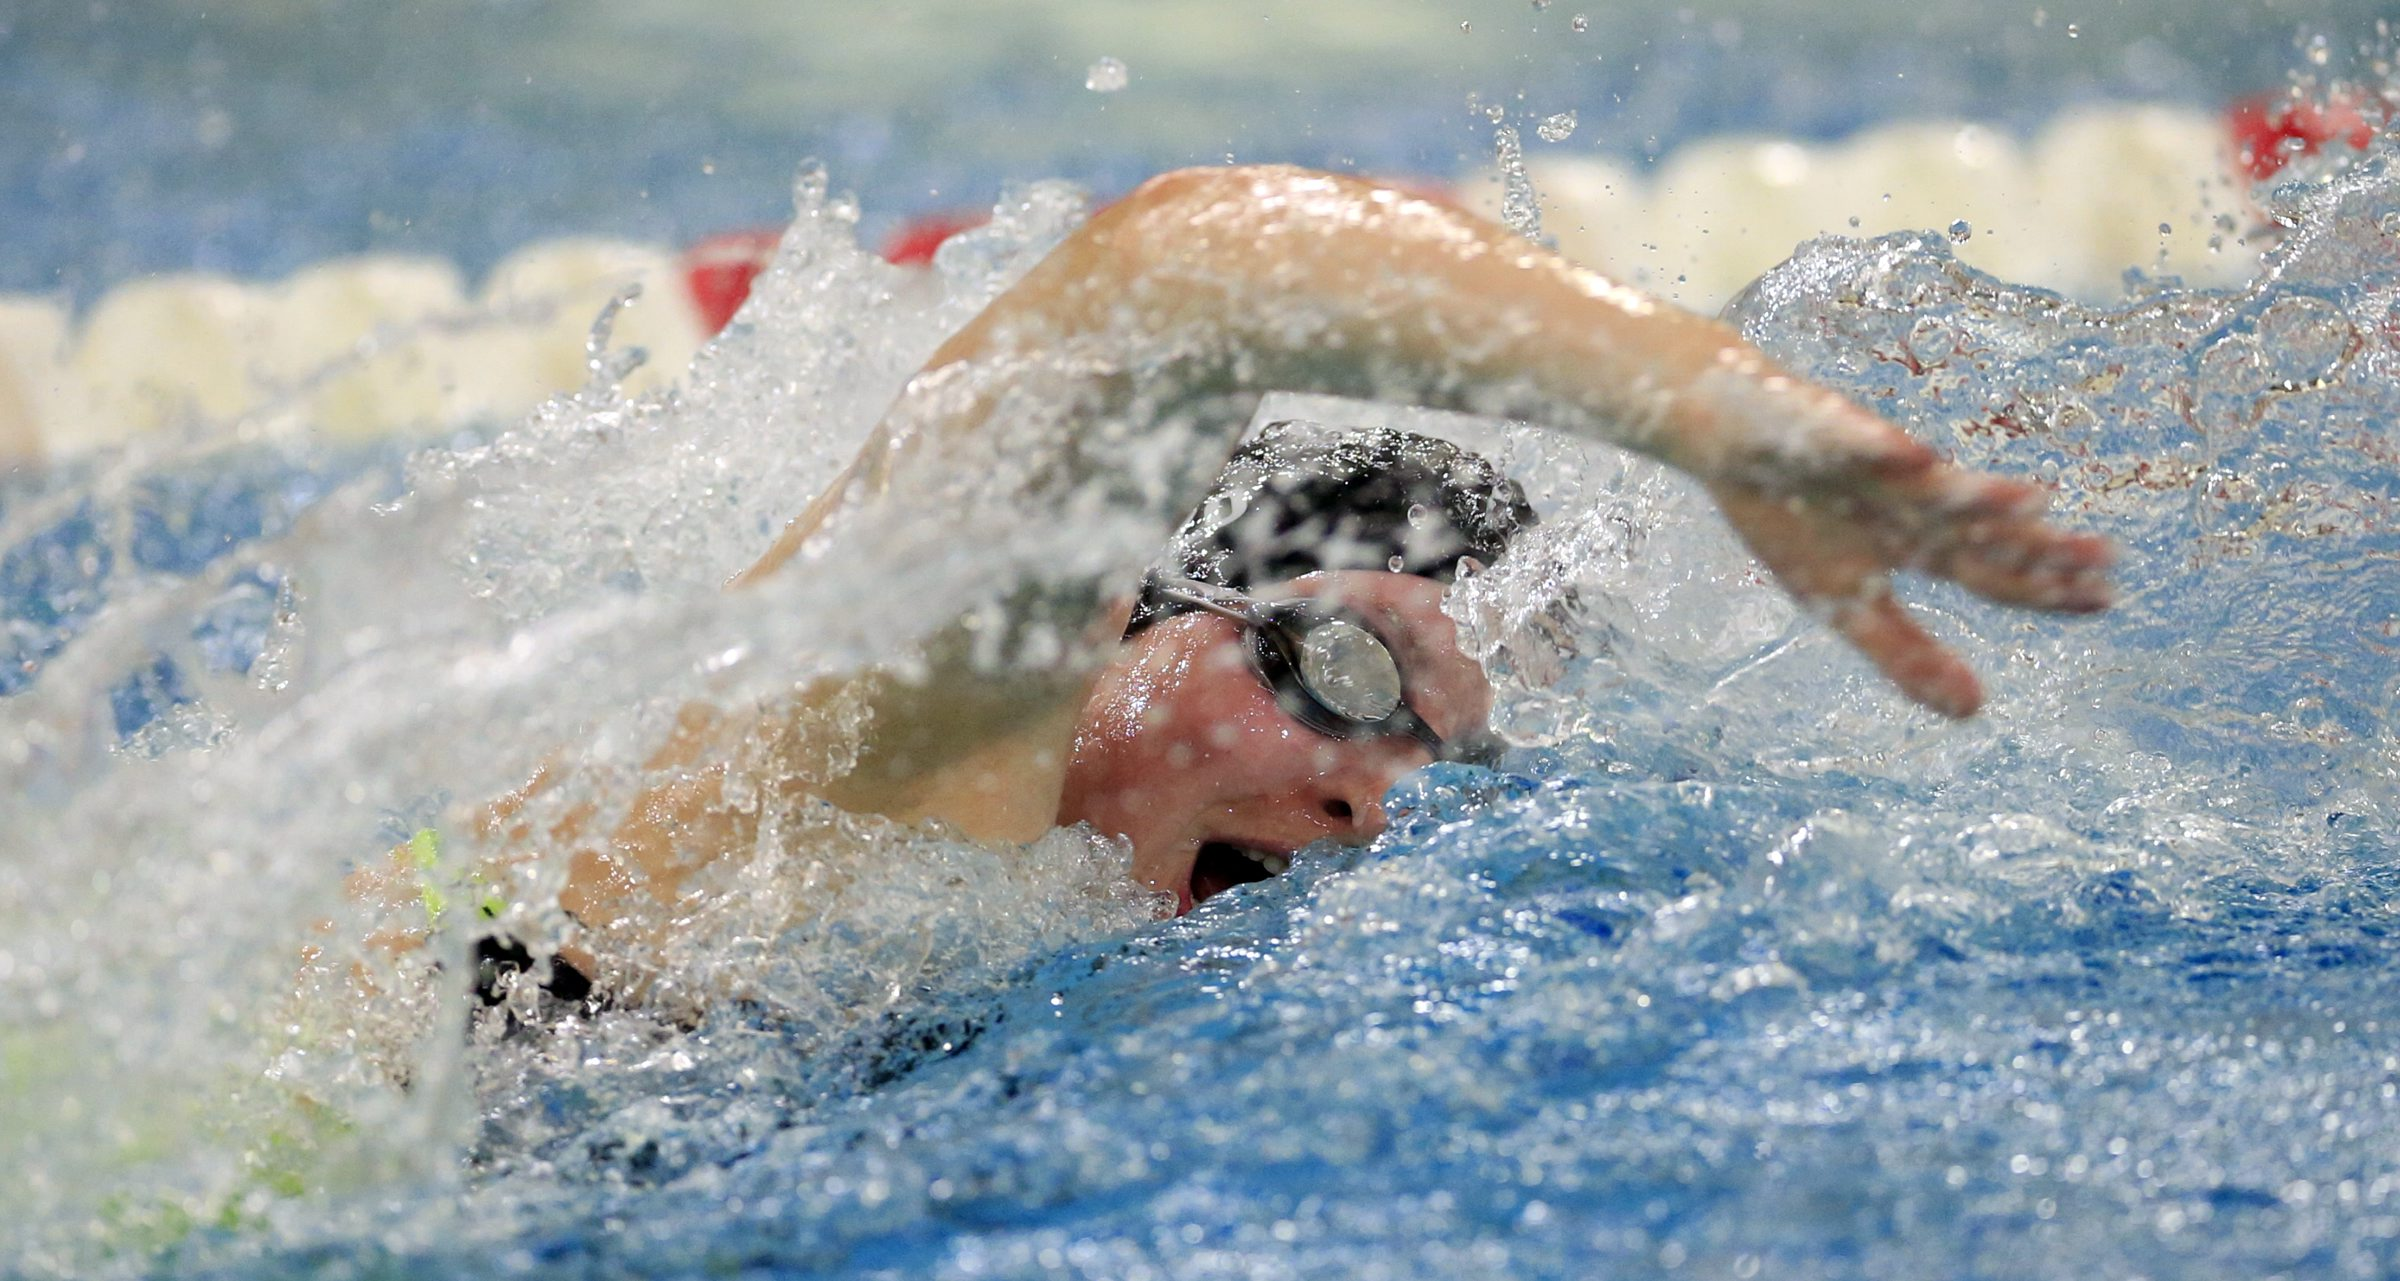 Ashley Gizzo from Sacred Heart wins the 50 free with a time of 25:13 during the All Catholic girls meet at the Flickenger Center on Wednesday, Nov. 4, 2015. (Harry Scull Jr./Buffalo News)